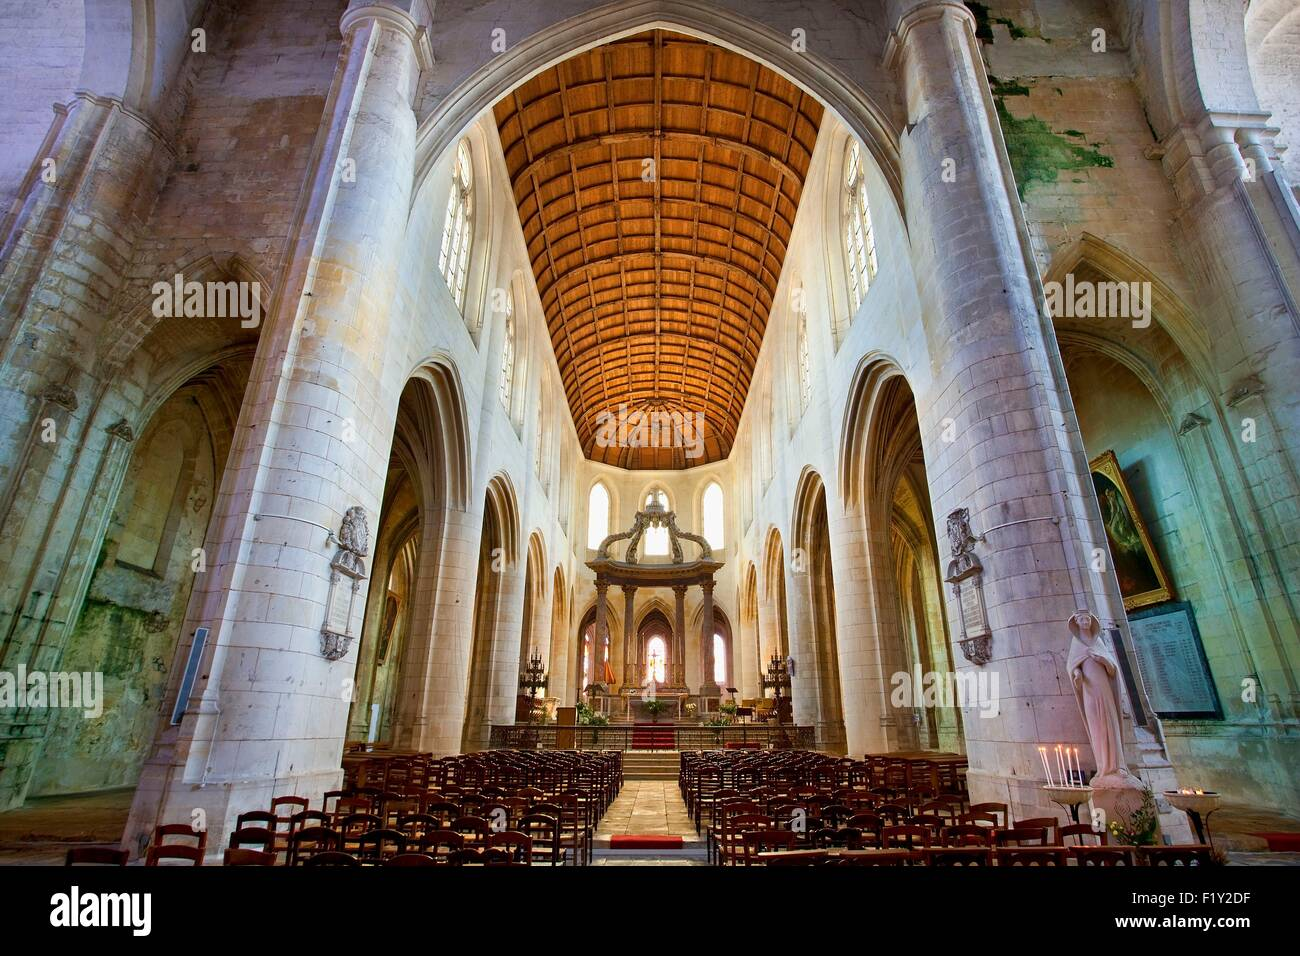 France, Charente Maritime, Saintonge region, Saintes, cathedral Saint Peter - Stock Image